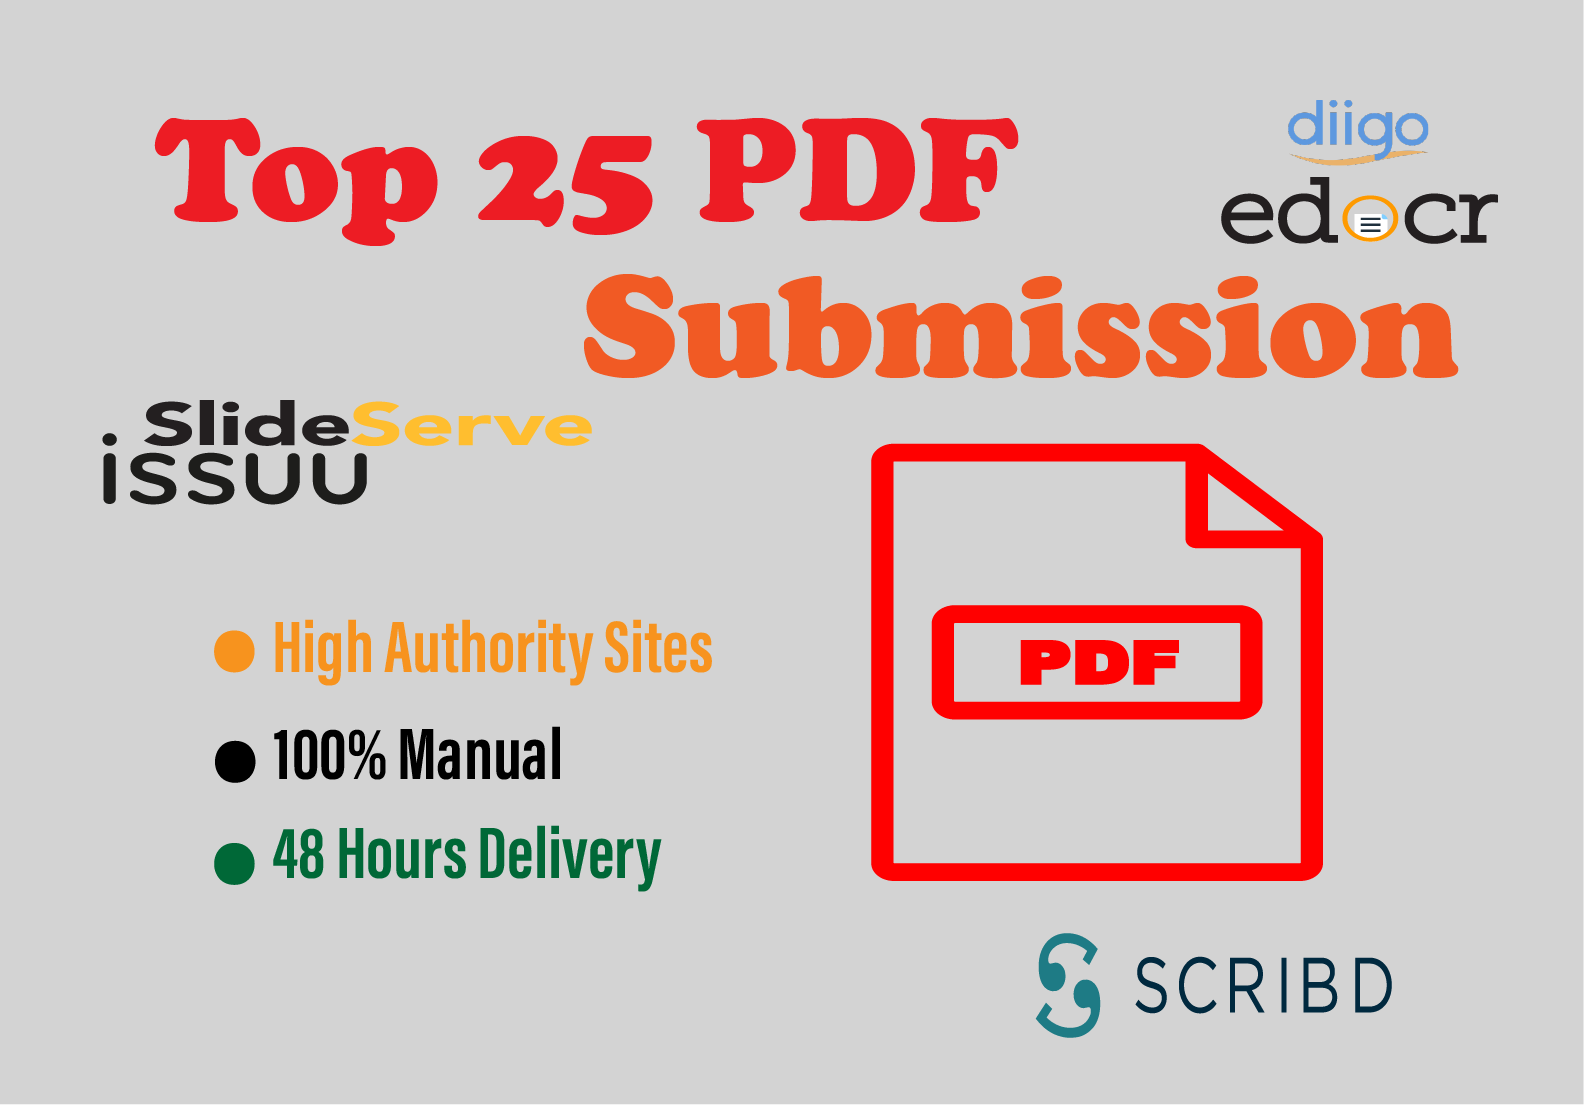 Top 25 Pdf Submission service manually for backlinks or traffic